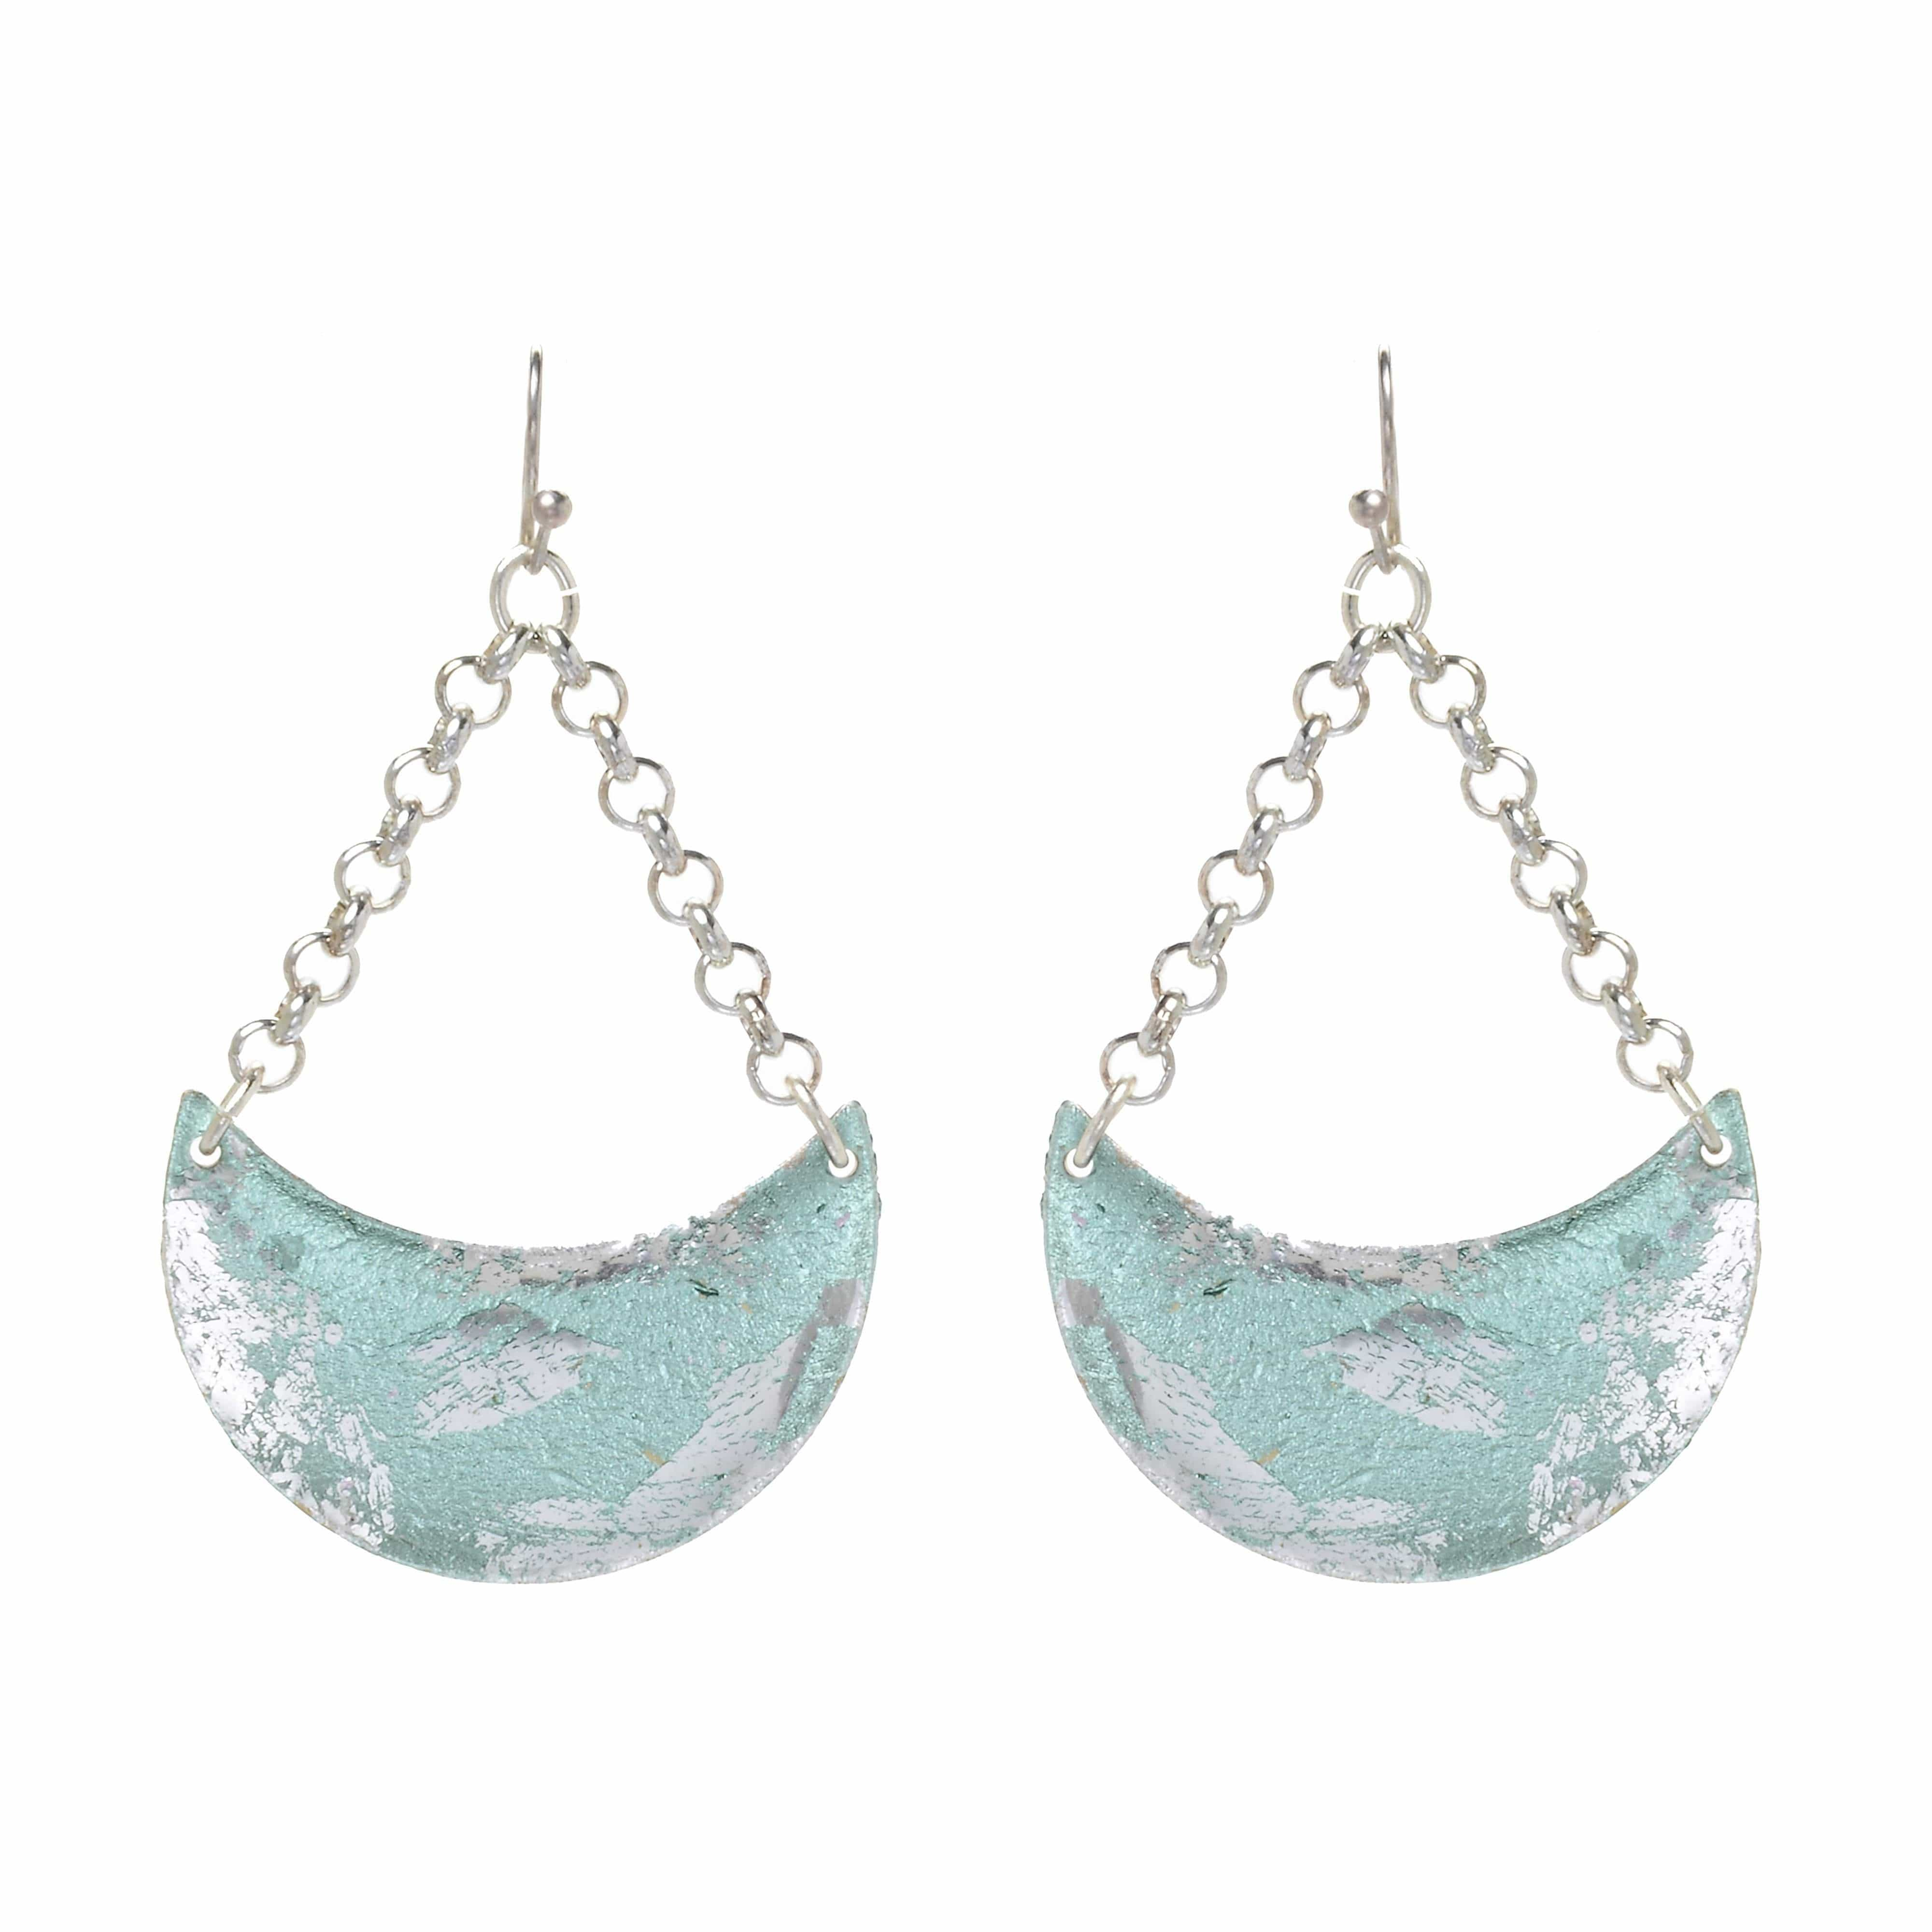 Turquoise Crescent Silver Earrings - EL402-Evocateur-Renee Taylor Gallery